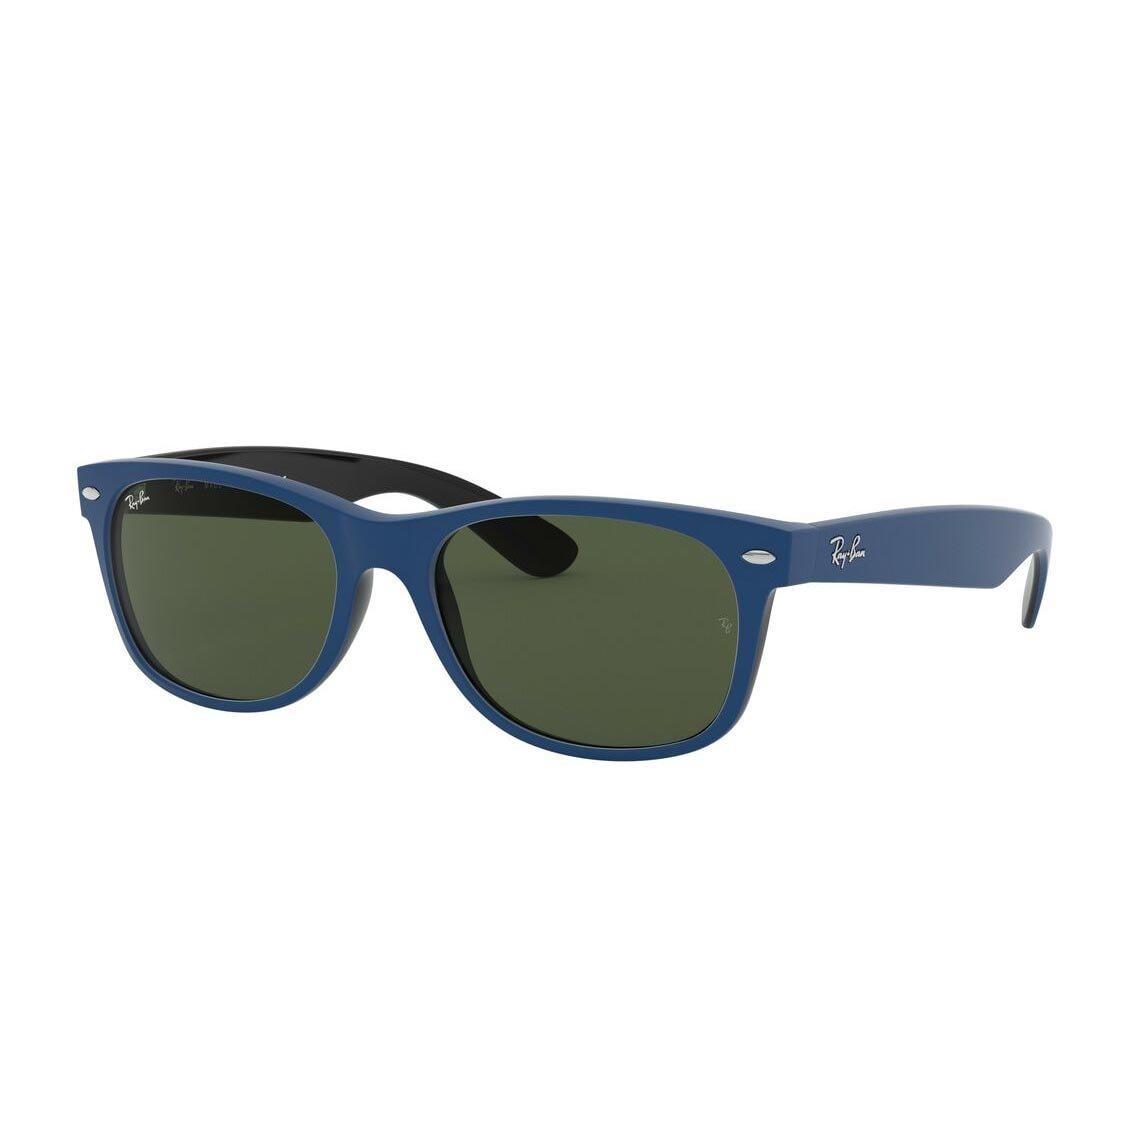 Ray-Ban New Wayfarer RB2132 646331 5518